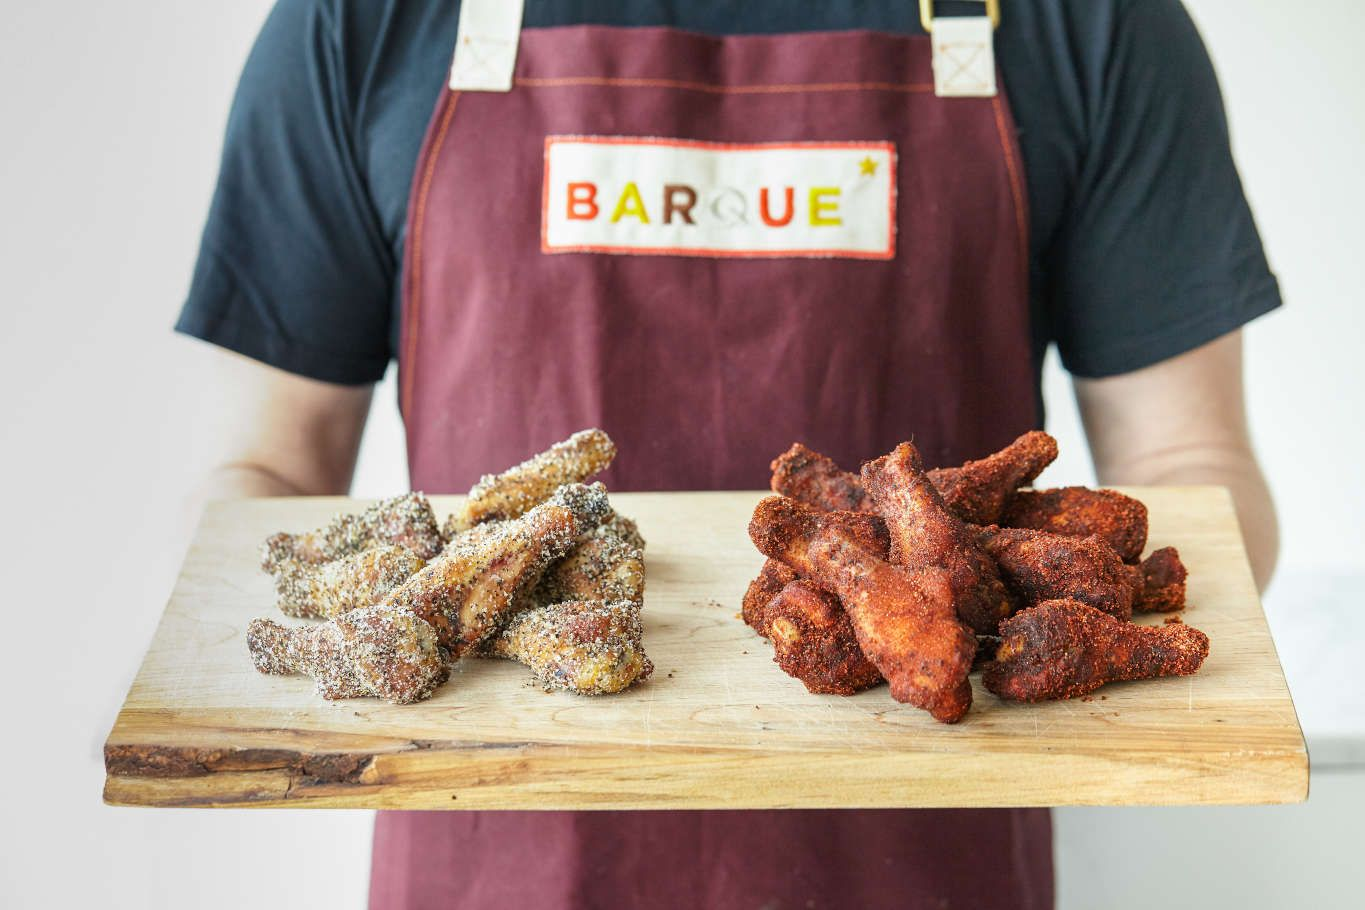 Barque Smokehouse: Refined BBQ in the Neighborhood